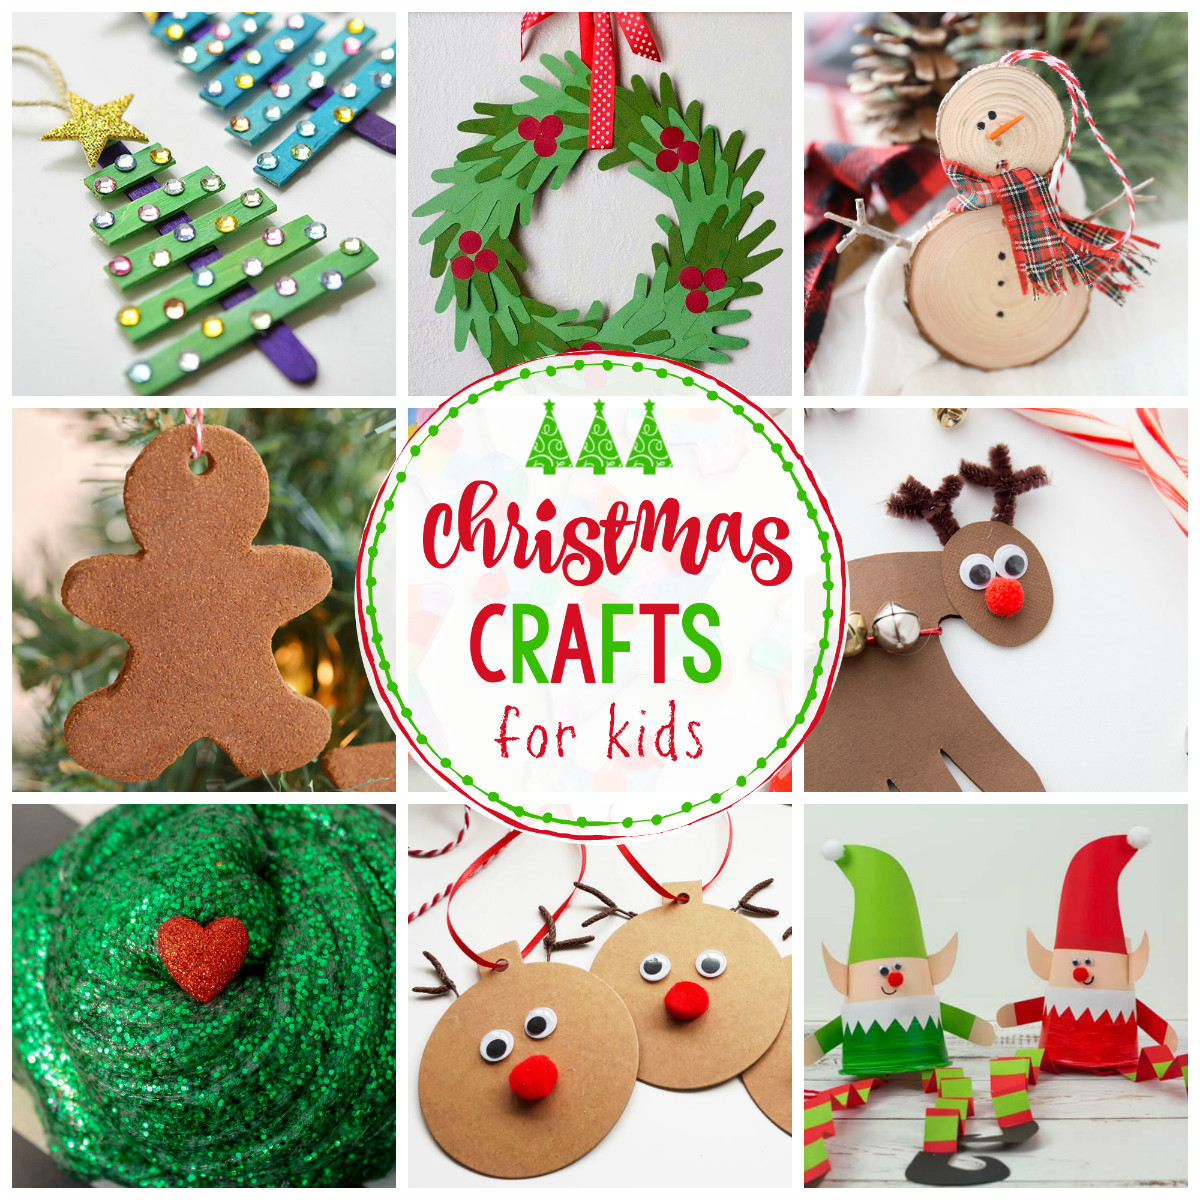 Crafts Ideas For Kids  25 Easy Christmas Crafts for Kids Crazy Little Projects